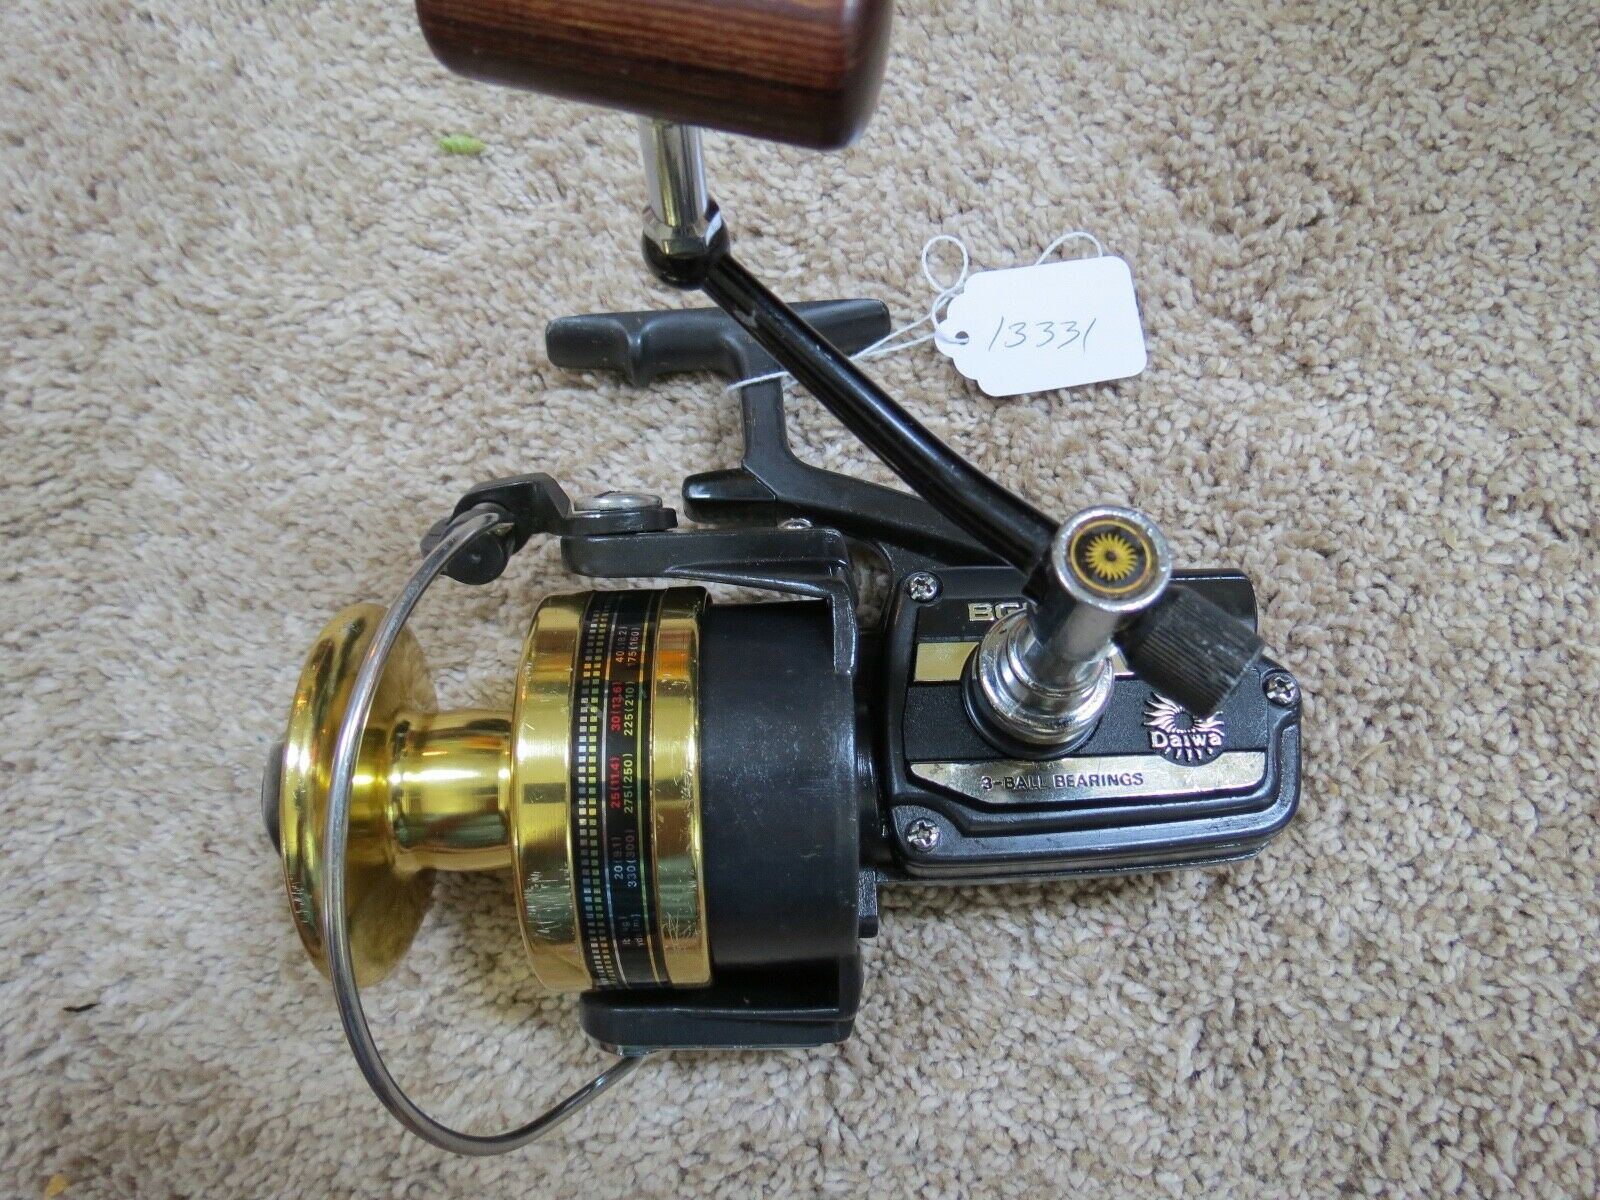 Daiwa BG90 Surf  fishing reel made in Japan lot 13331